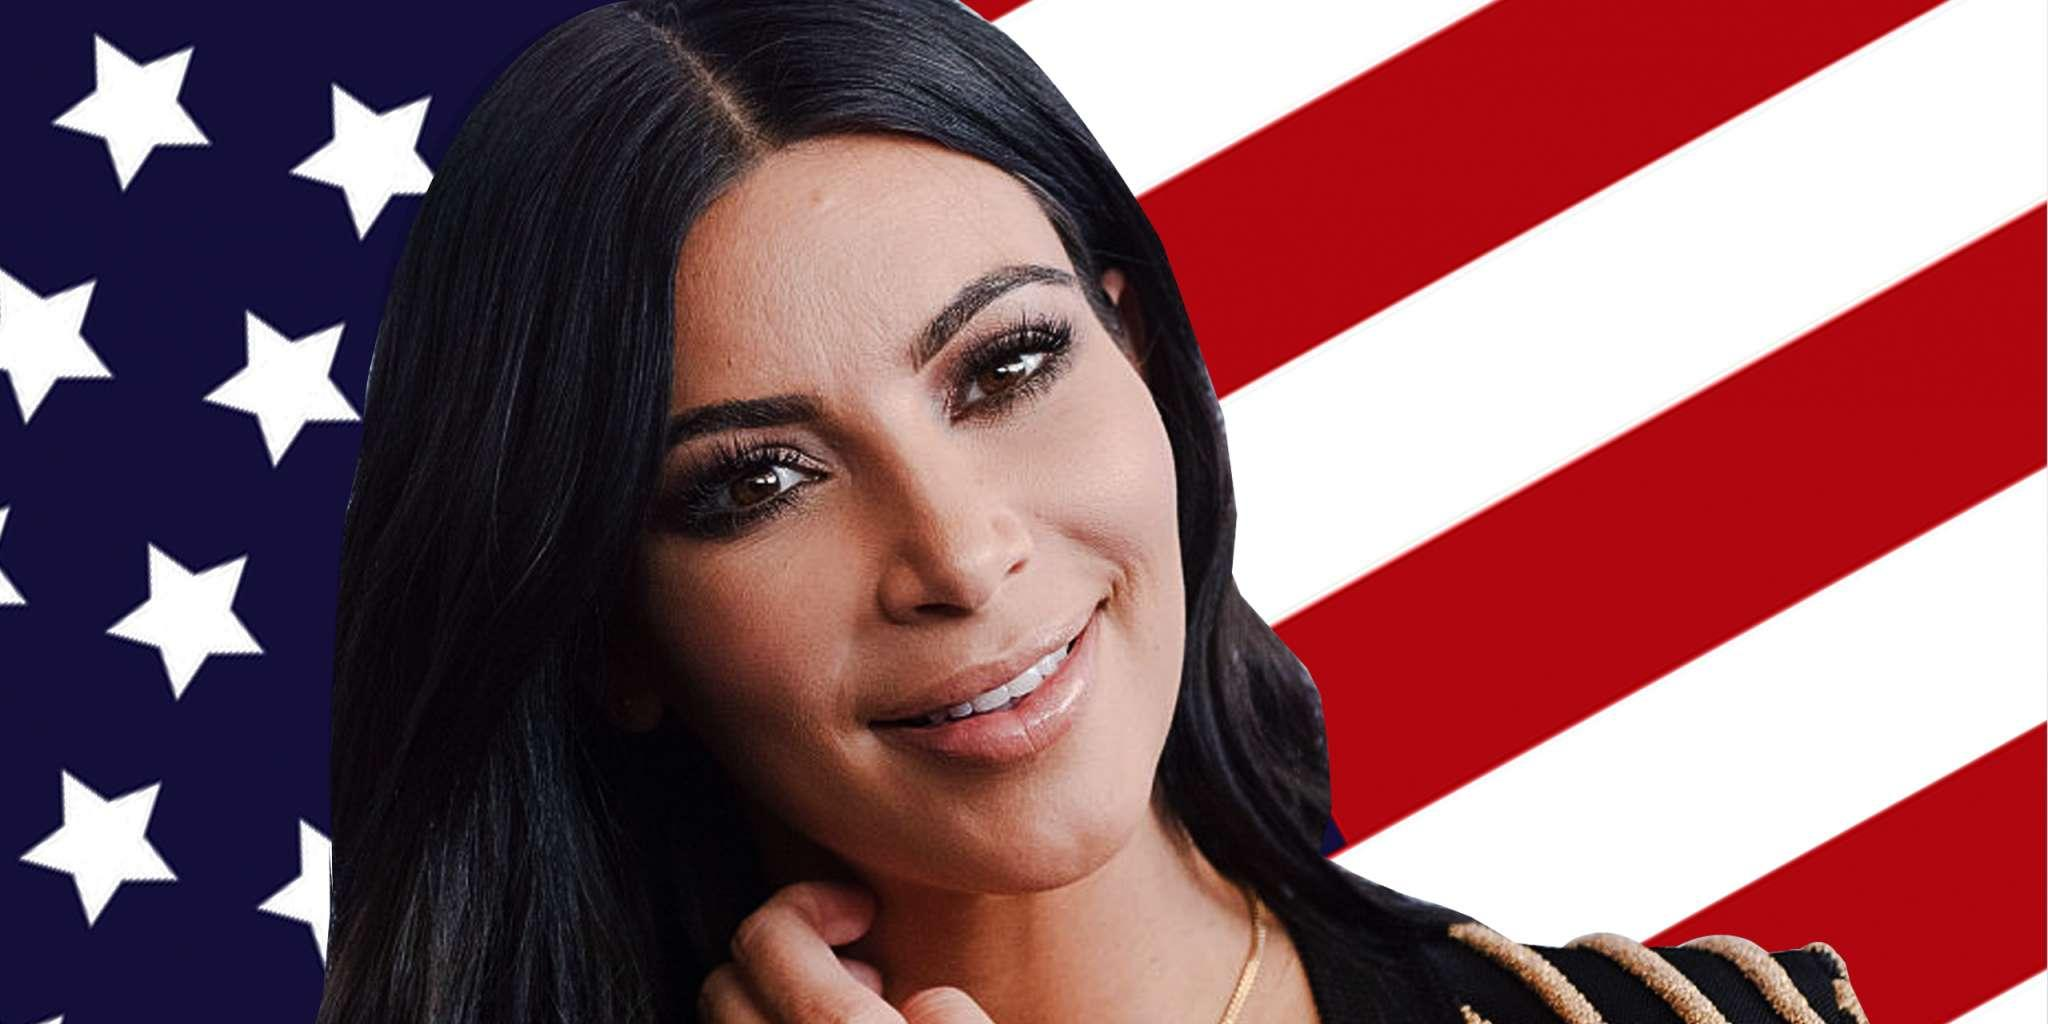 Kim Kardashian Wants To Bring An End To The California Death Penalty - Some People Say She's Doing It For KUWK's Sake